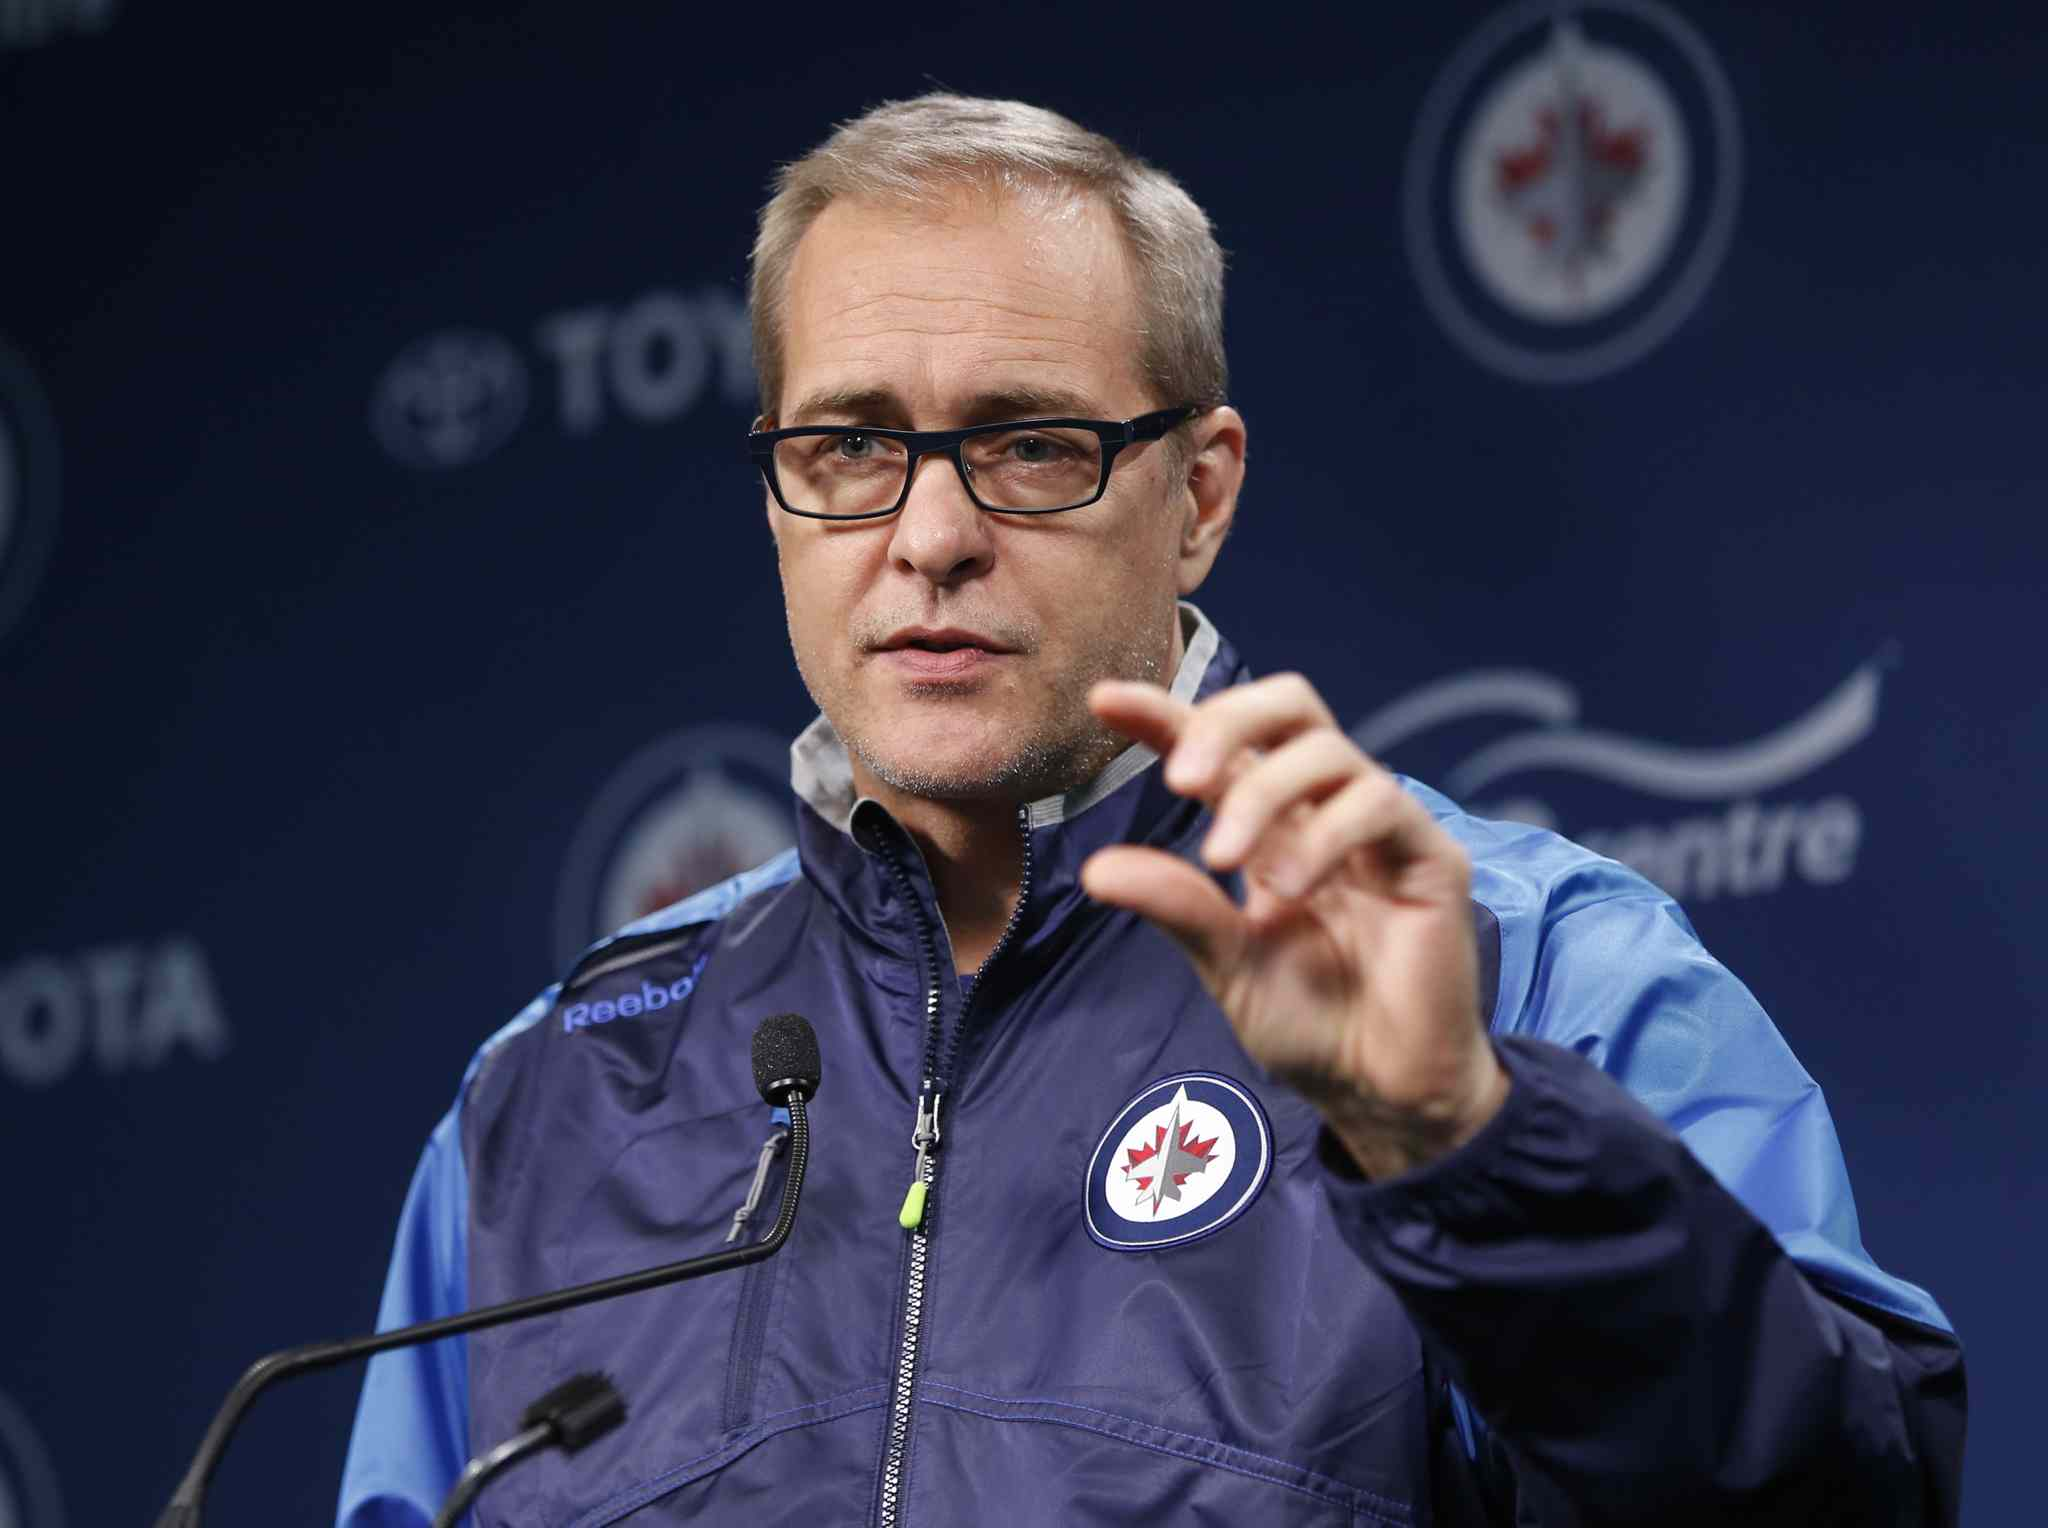 Winnipeg Jets Head Coach Paul Maurice is happy what he's seen from his young prospects in camp and added they've made some decisions very difficult.